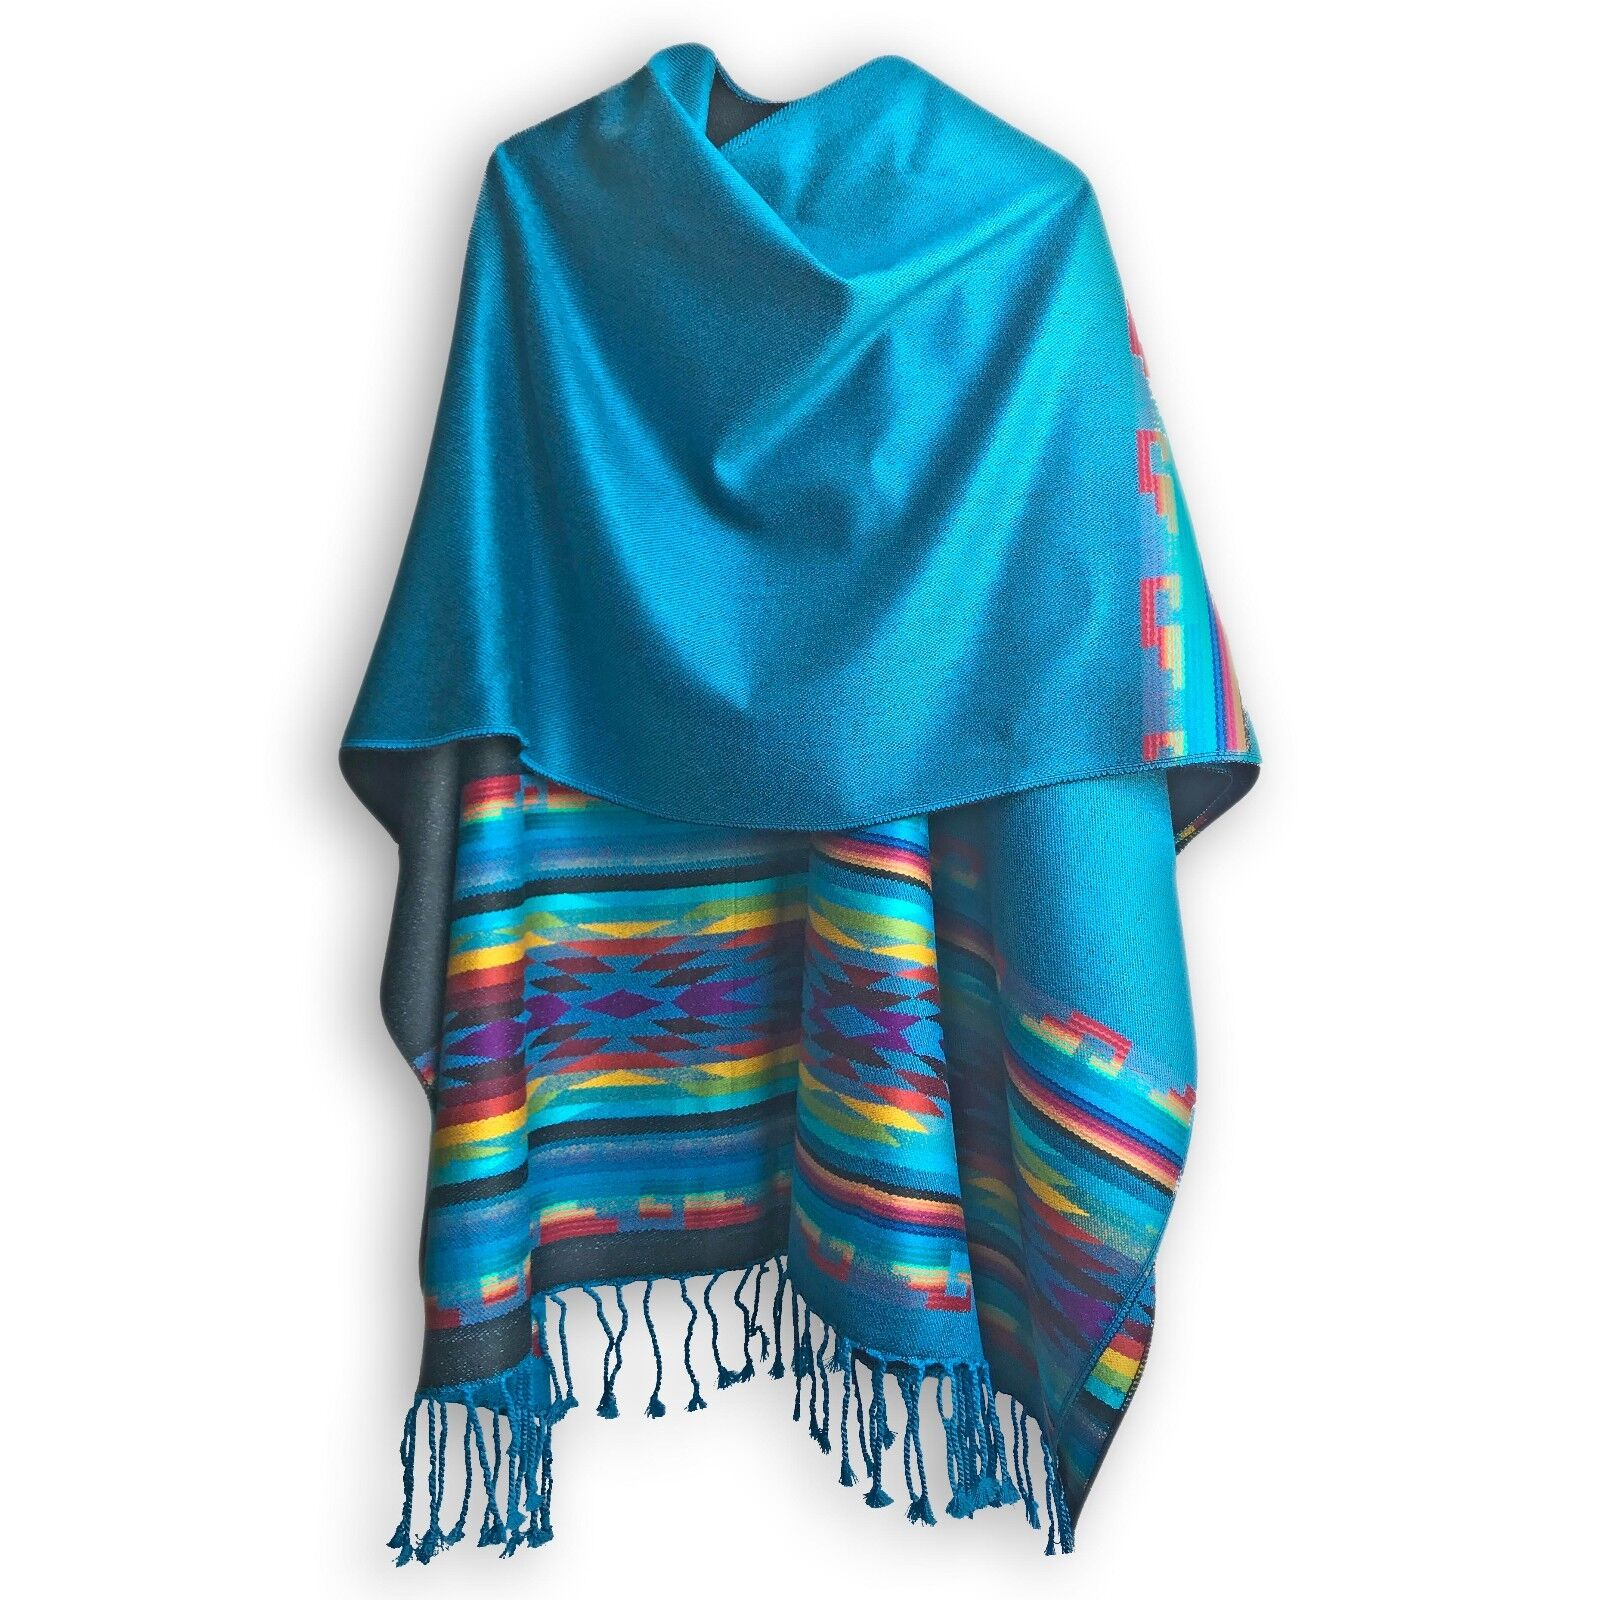 HIGH QUALITY ALPACA WOOL PONCHO WRAP blueE TURQUOISE HANDMADE IN ECUADOR